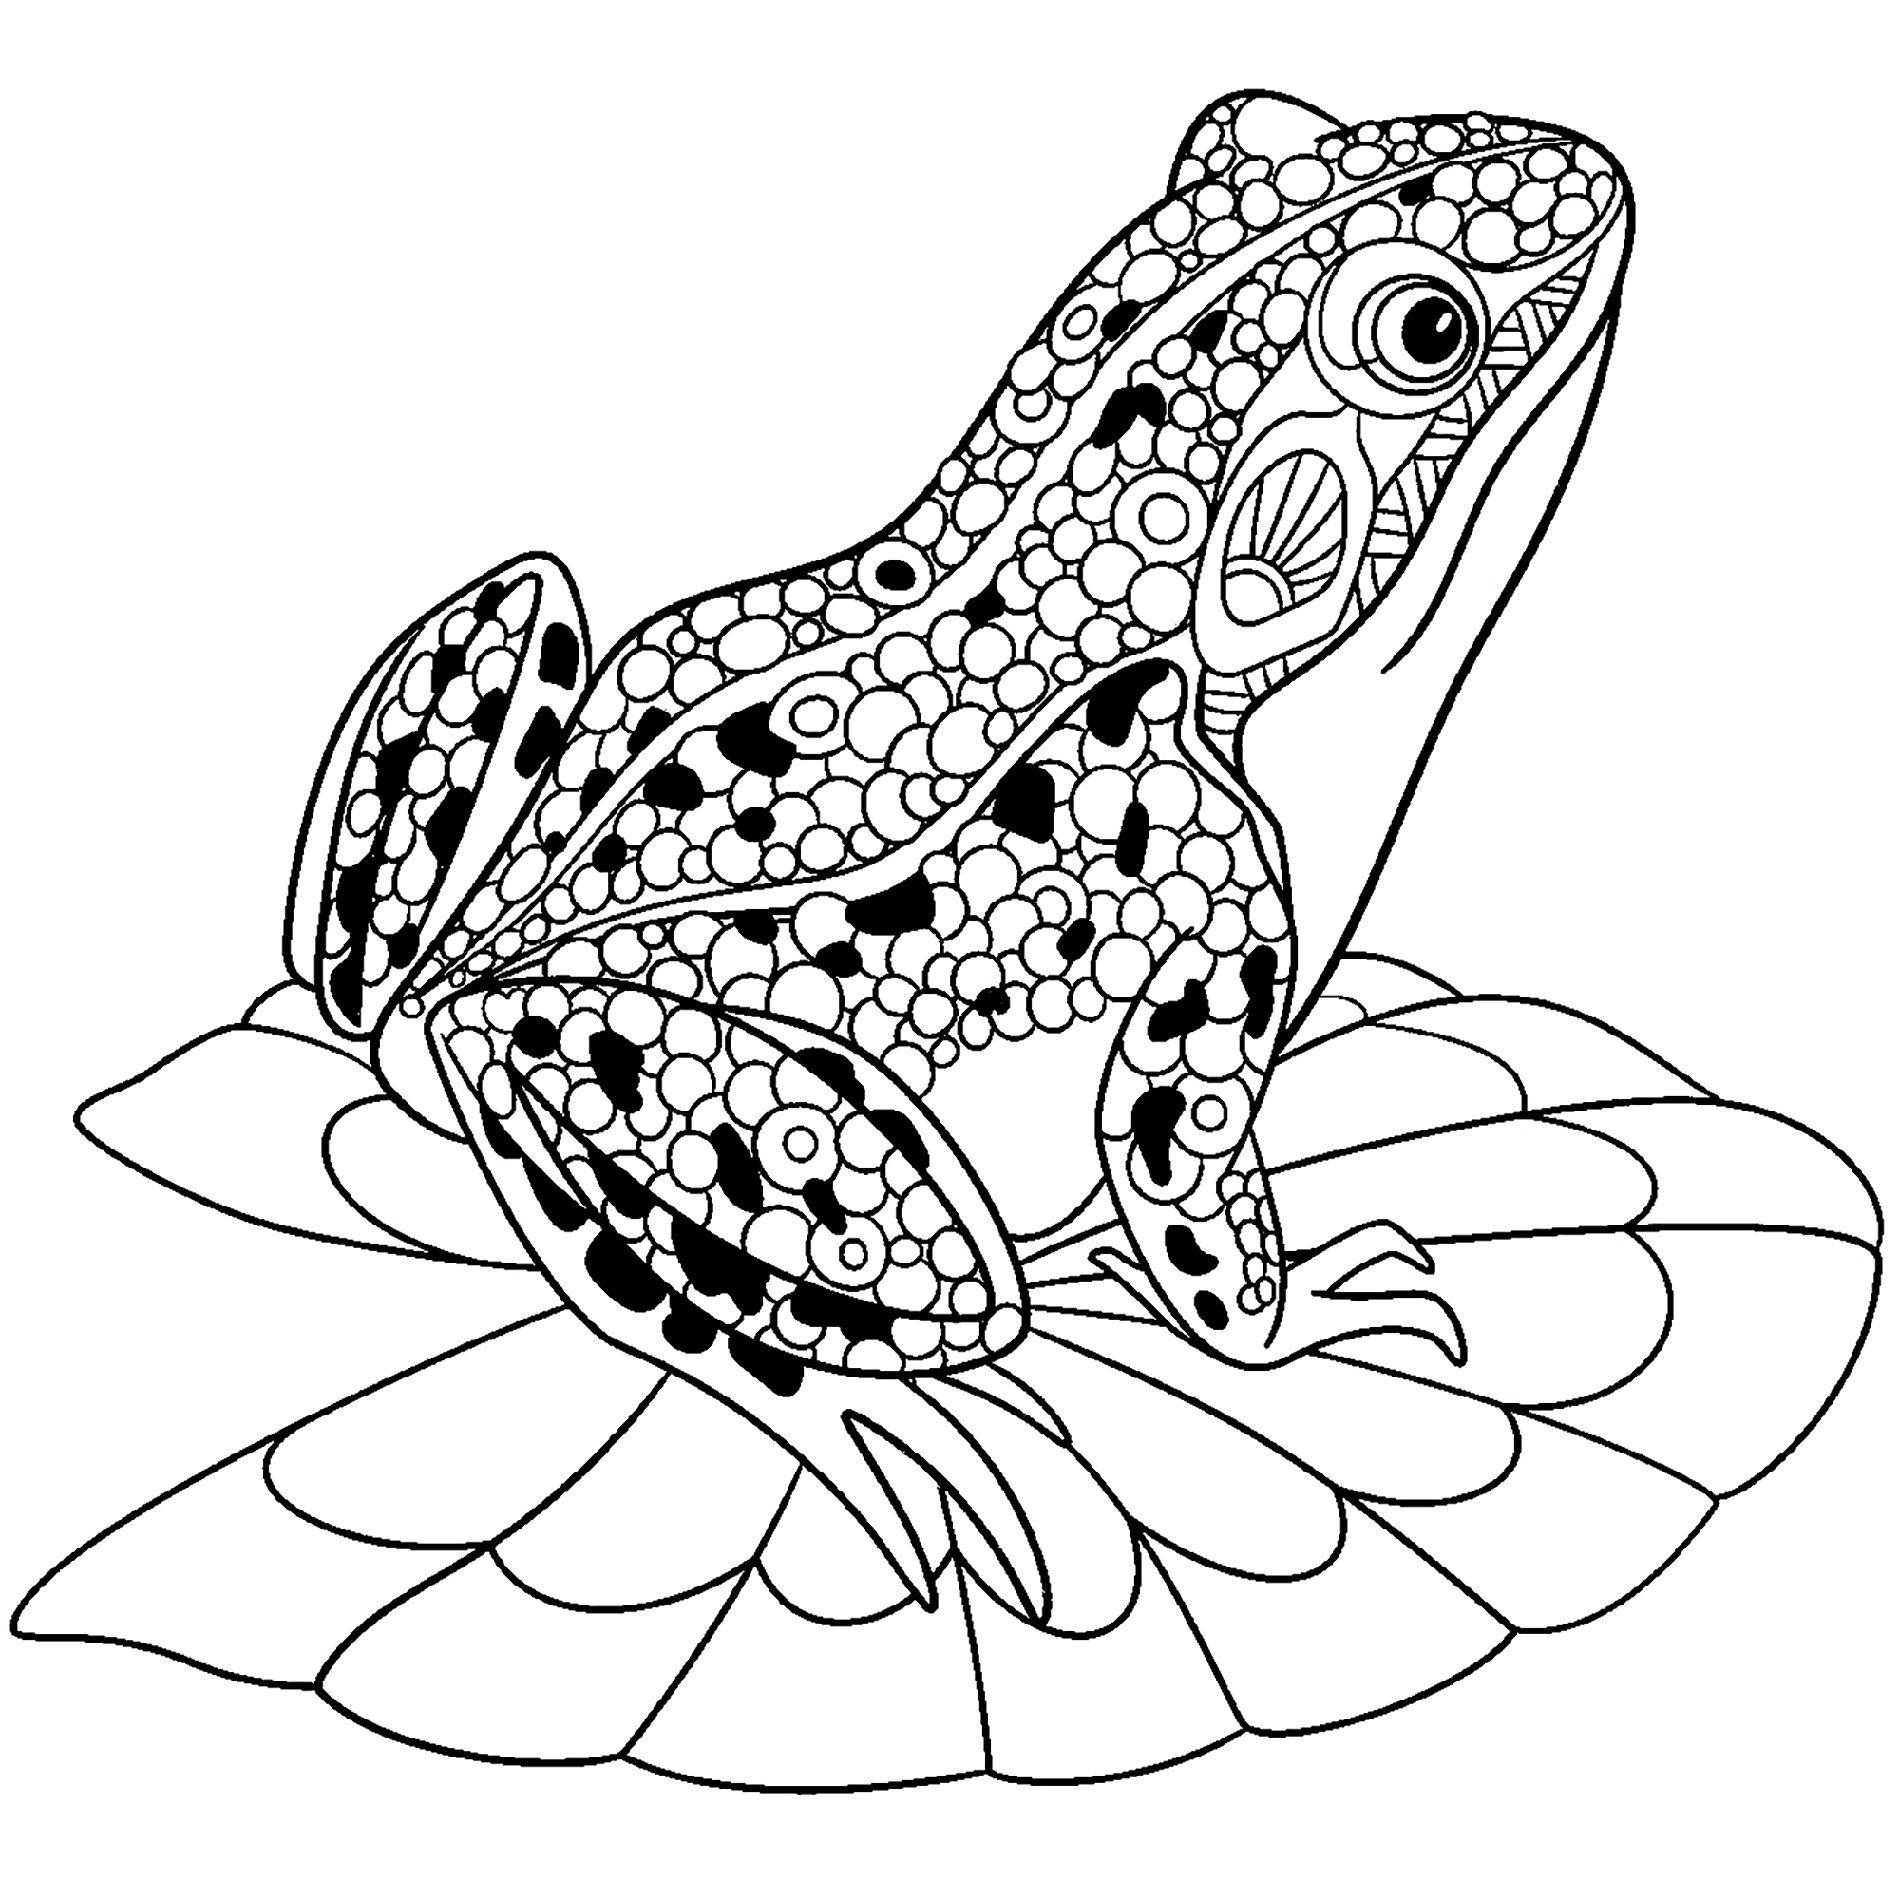 Frog Color Sheet for Adult